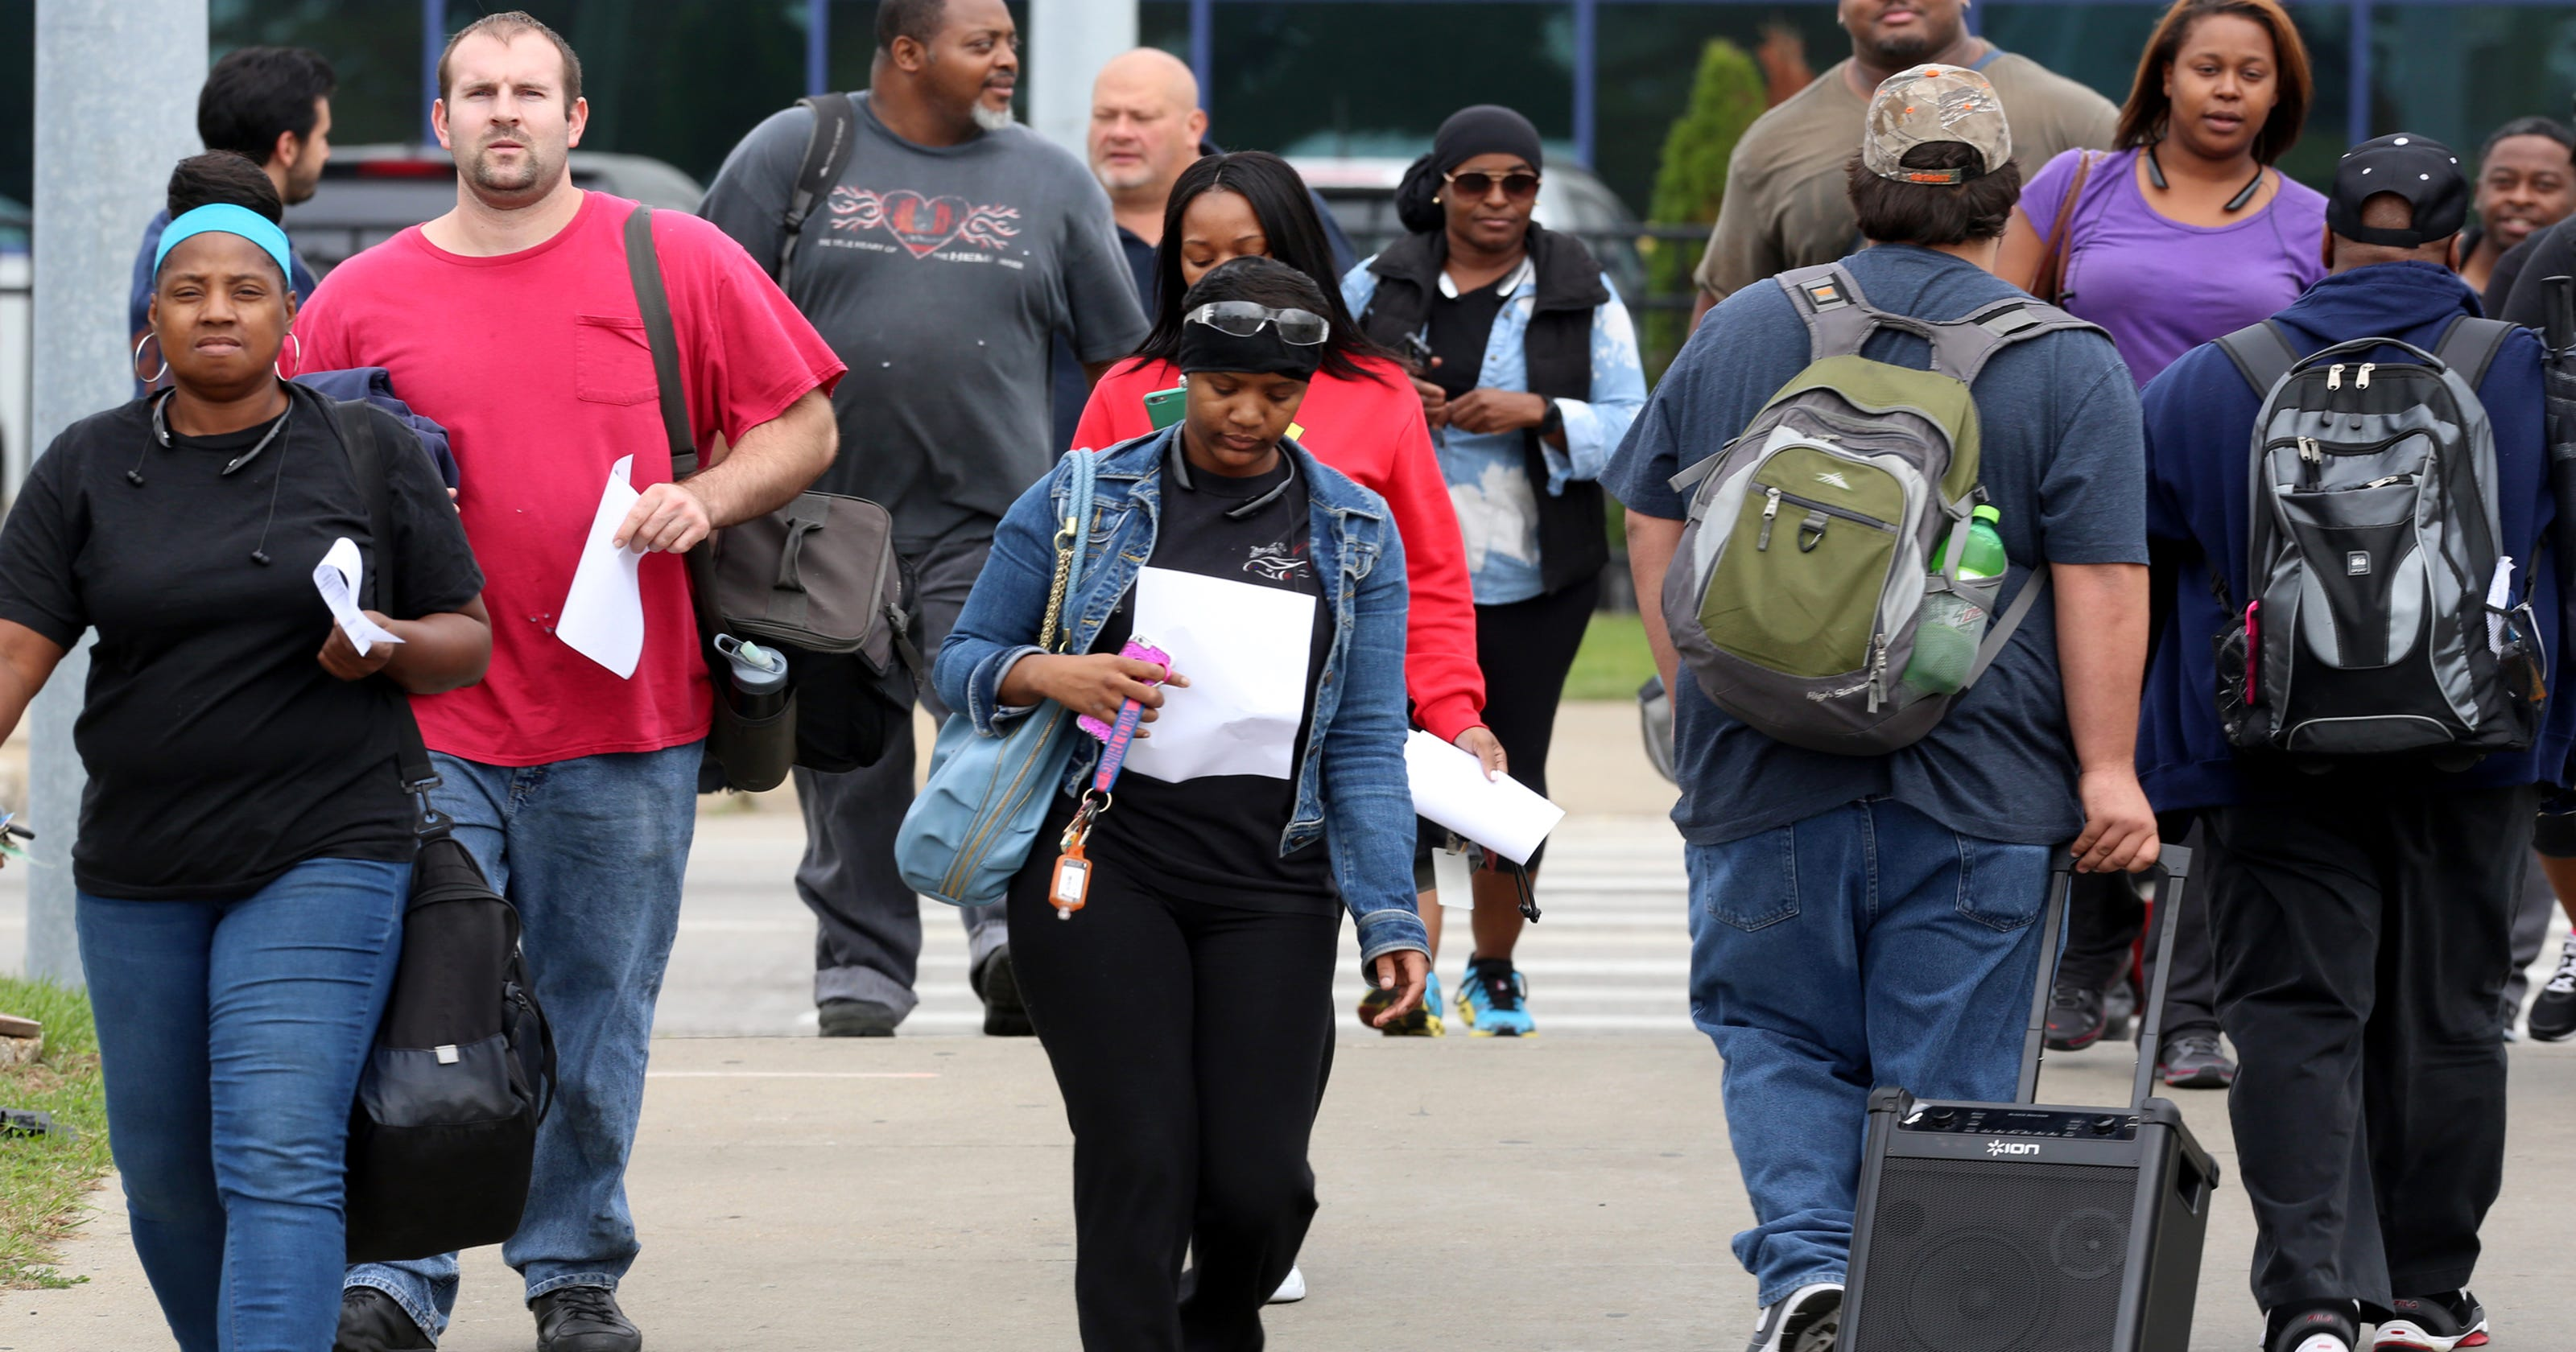 New Uaw Fca Deal Gives Tier 2 Workers Path To Top Pay